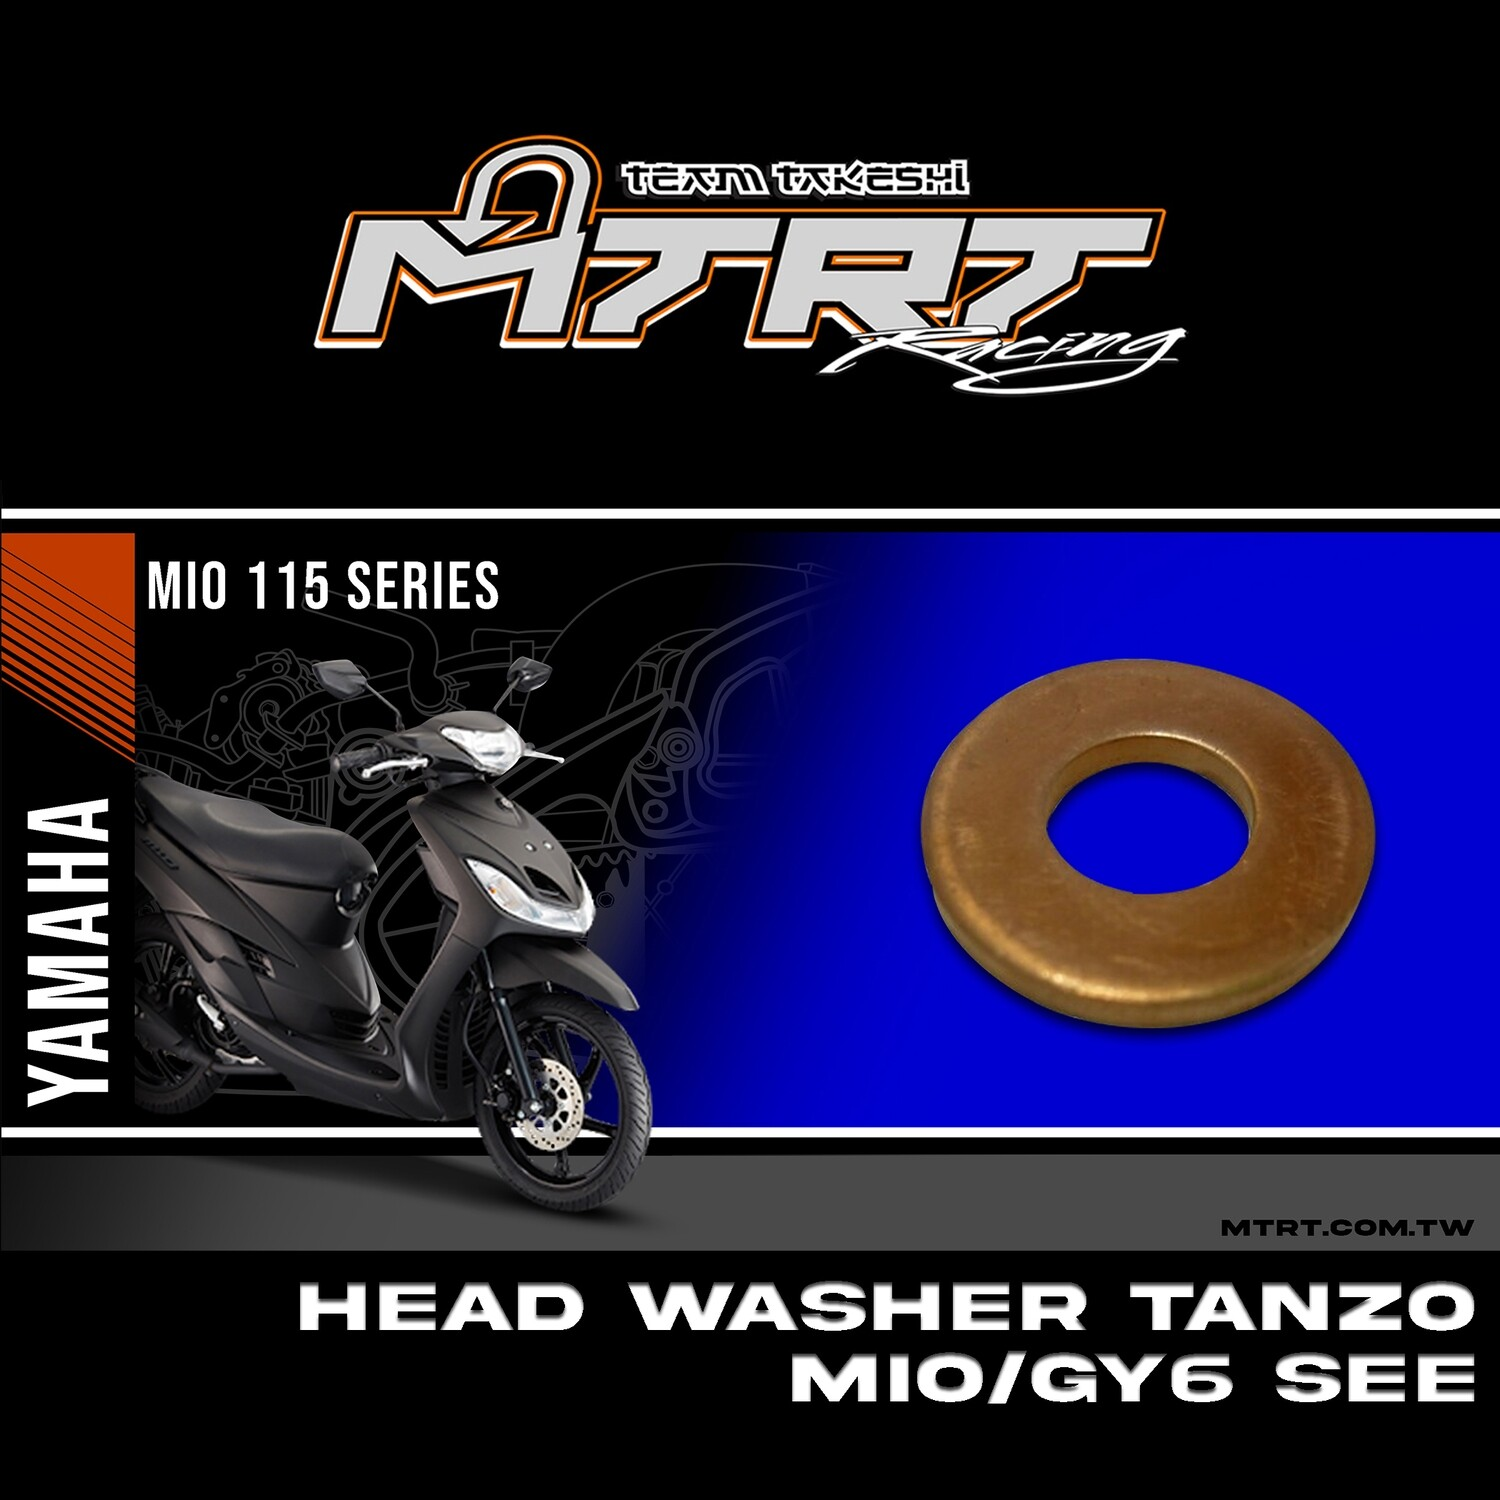 HEAD WASHER TANZO  MIO/GY6 SEE